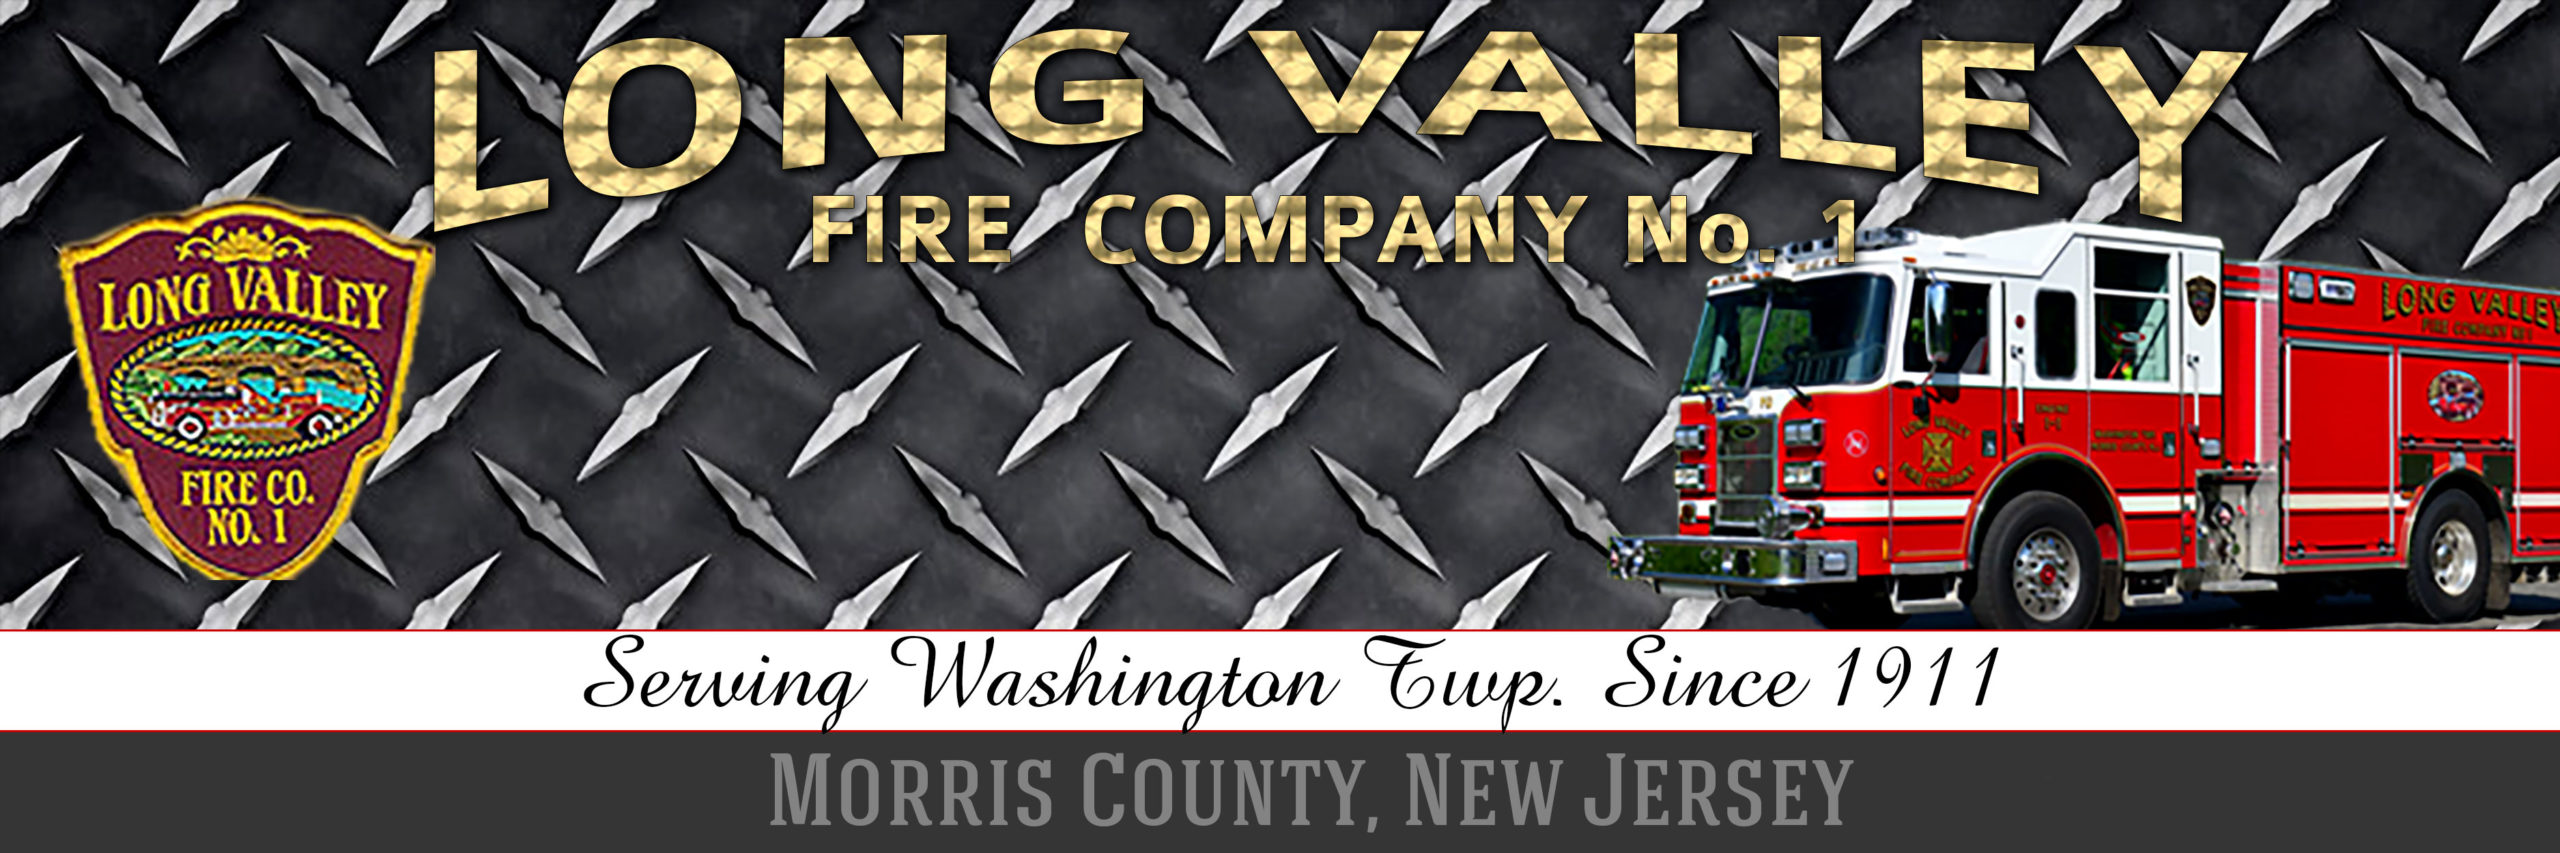 Long Valley Fire Company